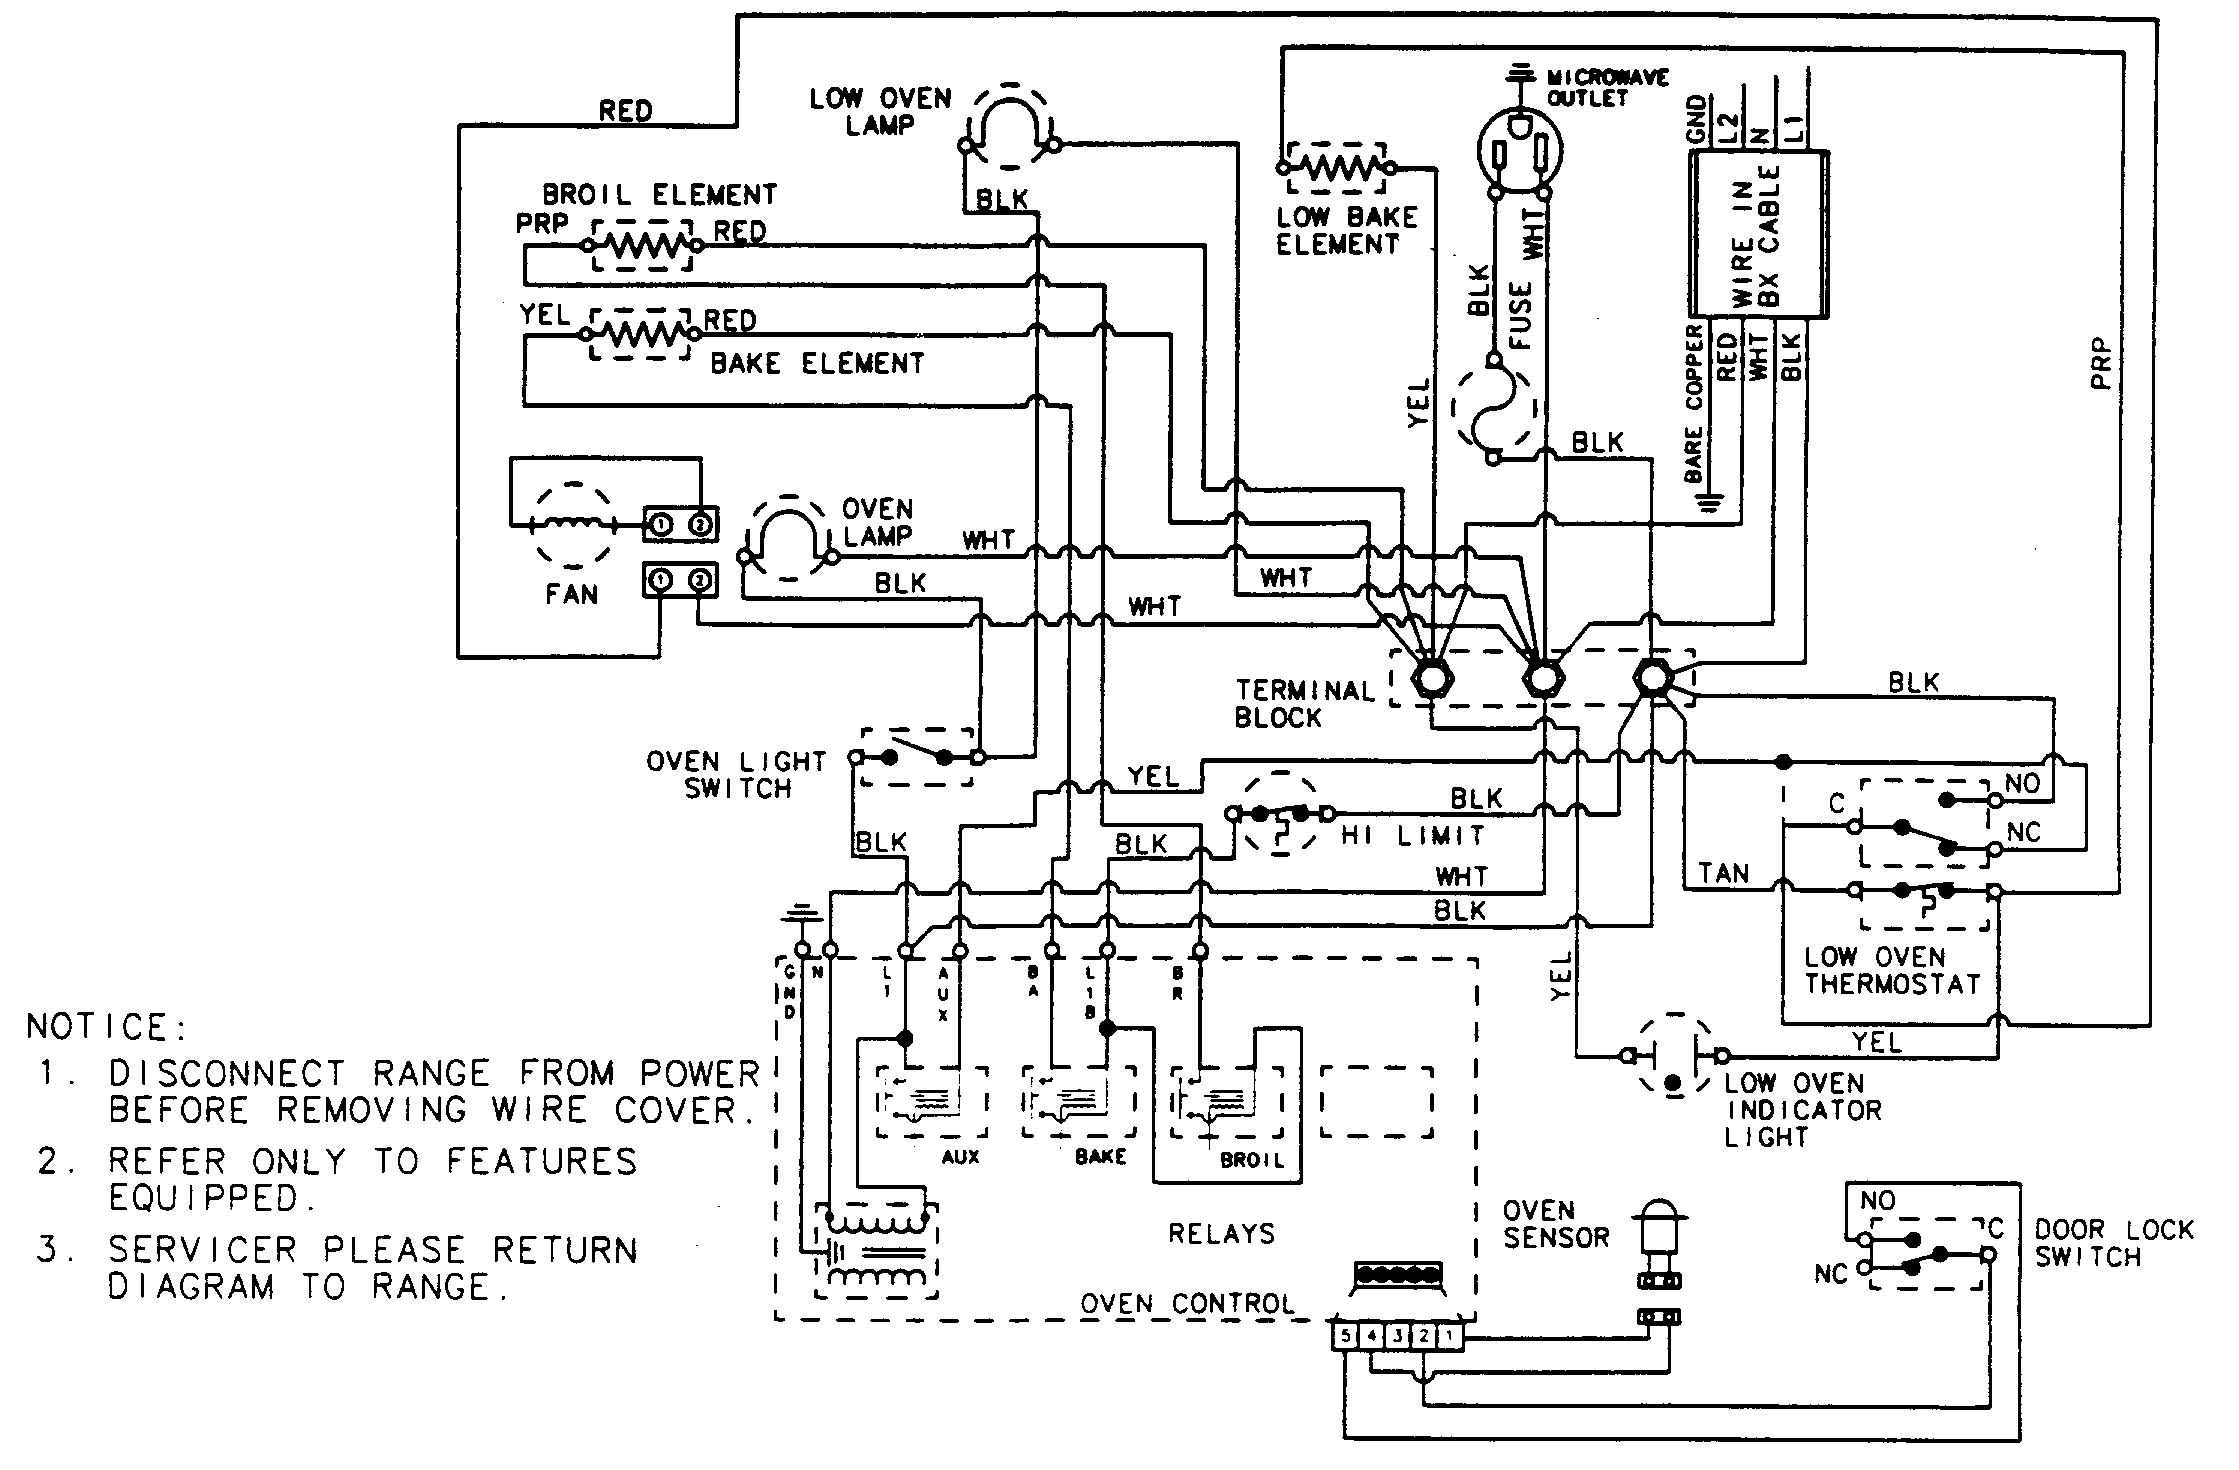 wiring information parts magic chef 9825vuv electric oven timer stove clocks and oven wiring diagrams at gsmx.co